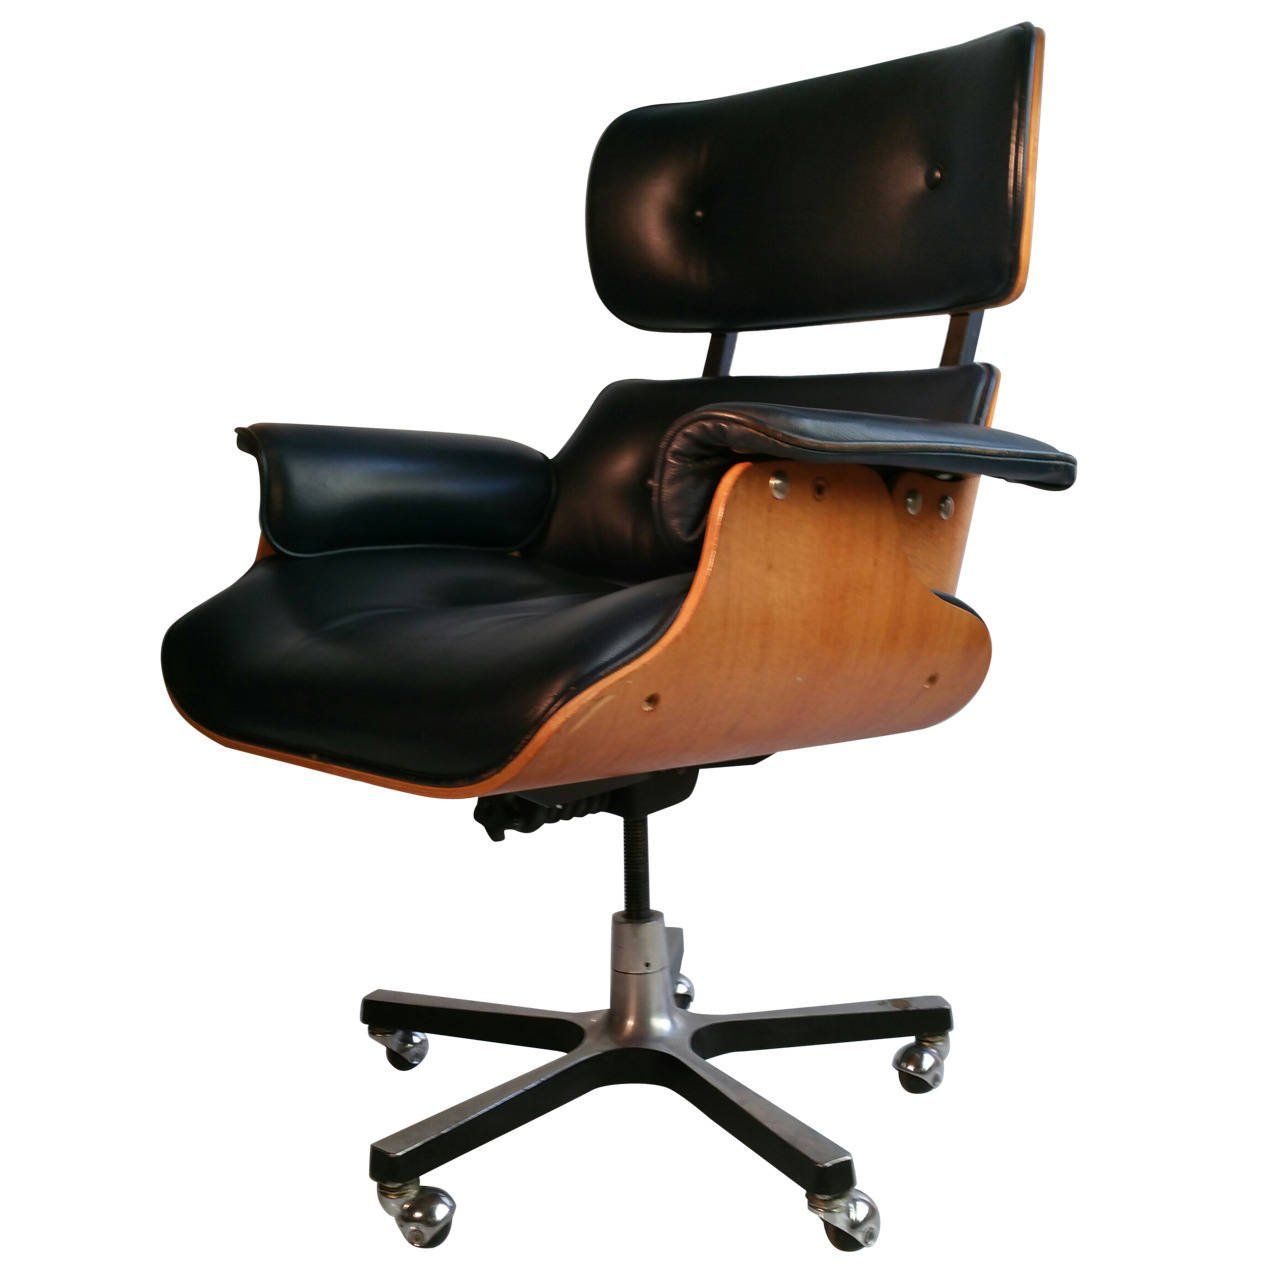 Modernist Eames Style Leather Desk Chair From A Unique Collection Of Antique And Modern Office Chairs Eames Office Chair Modern Office Chair Eames Chair Desk